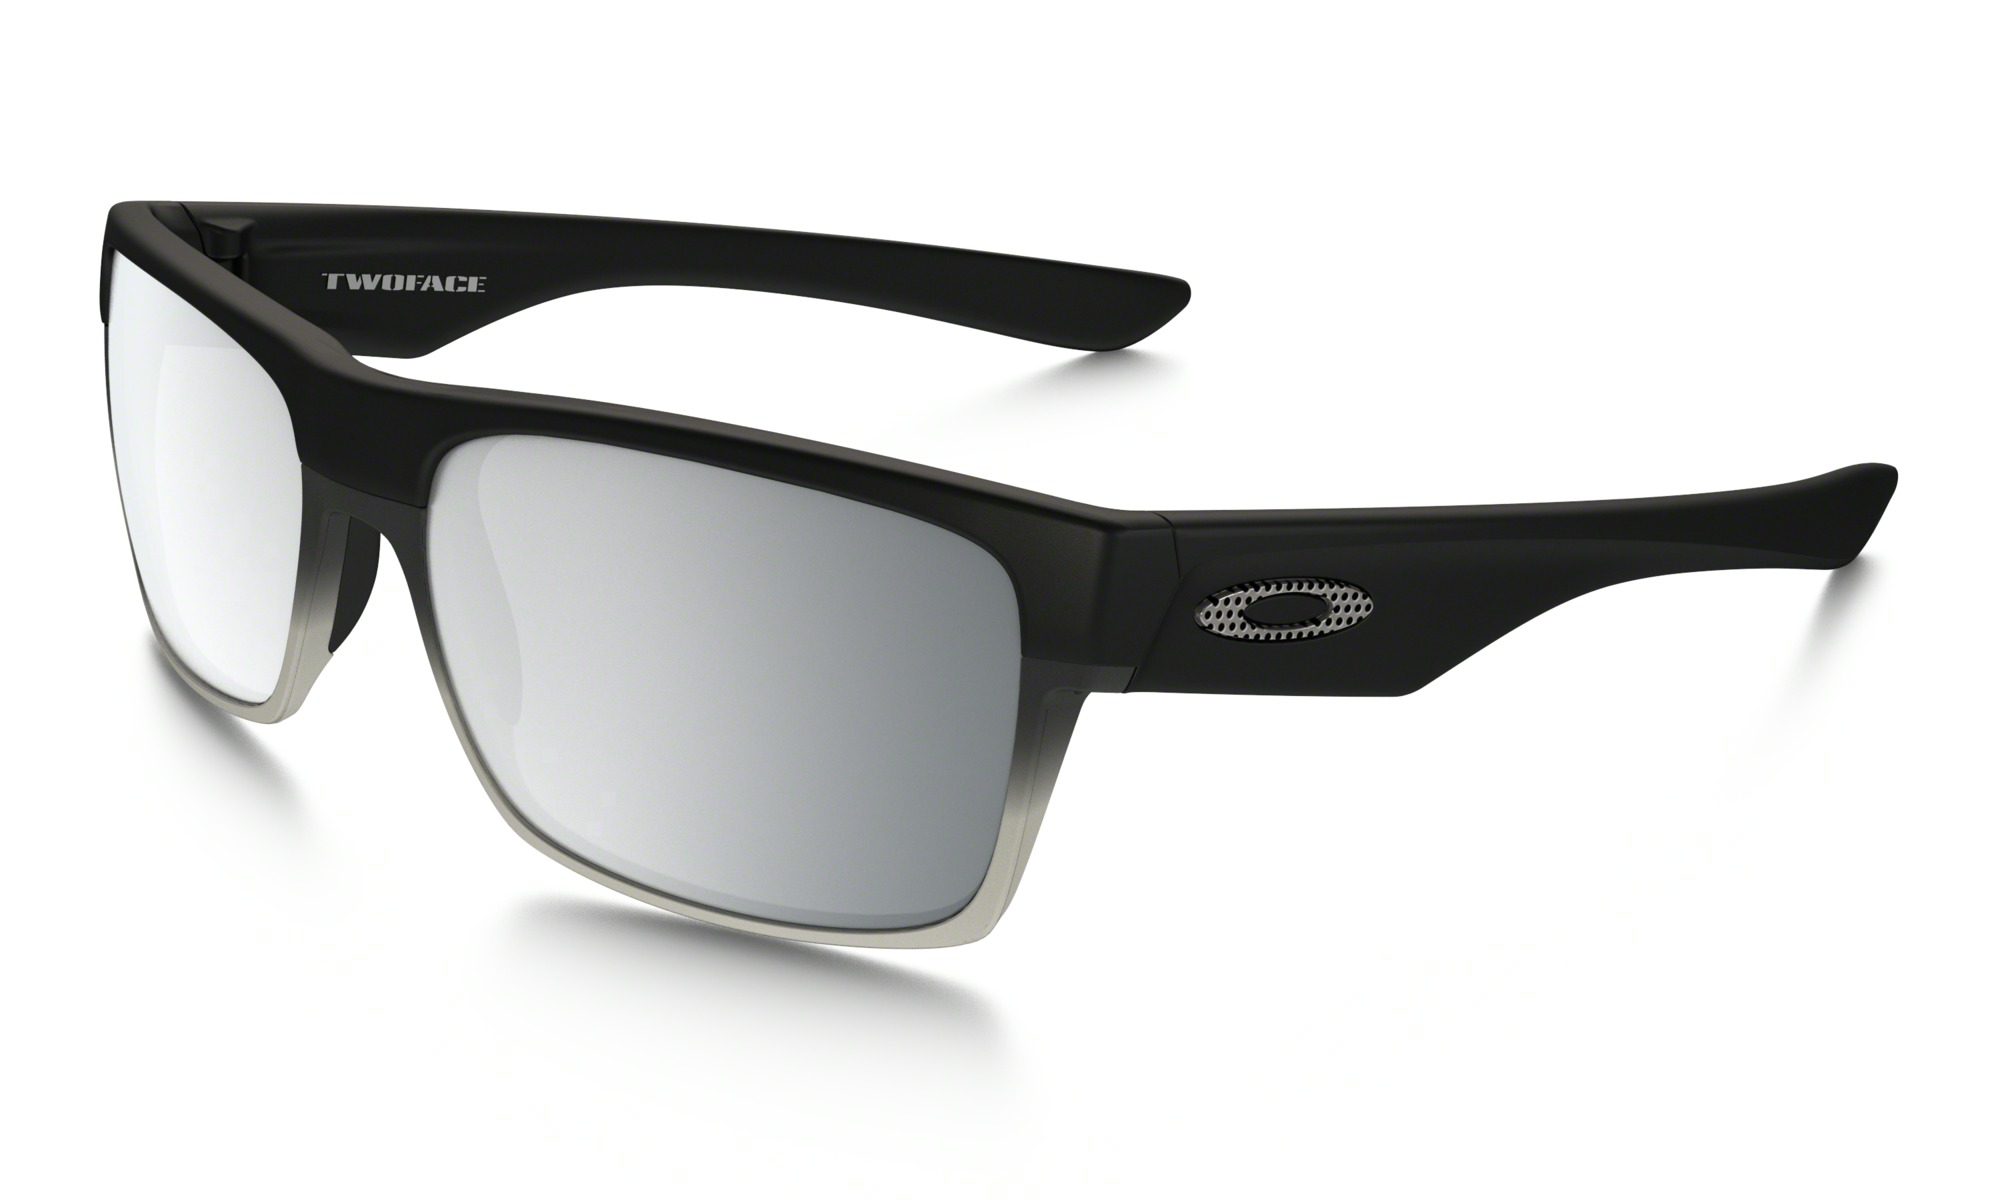 Oakley Twoface Machinist Collection In Matte Black Chrome